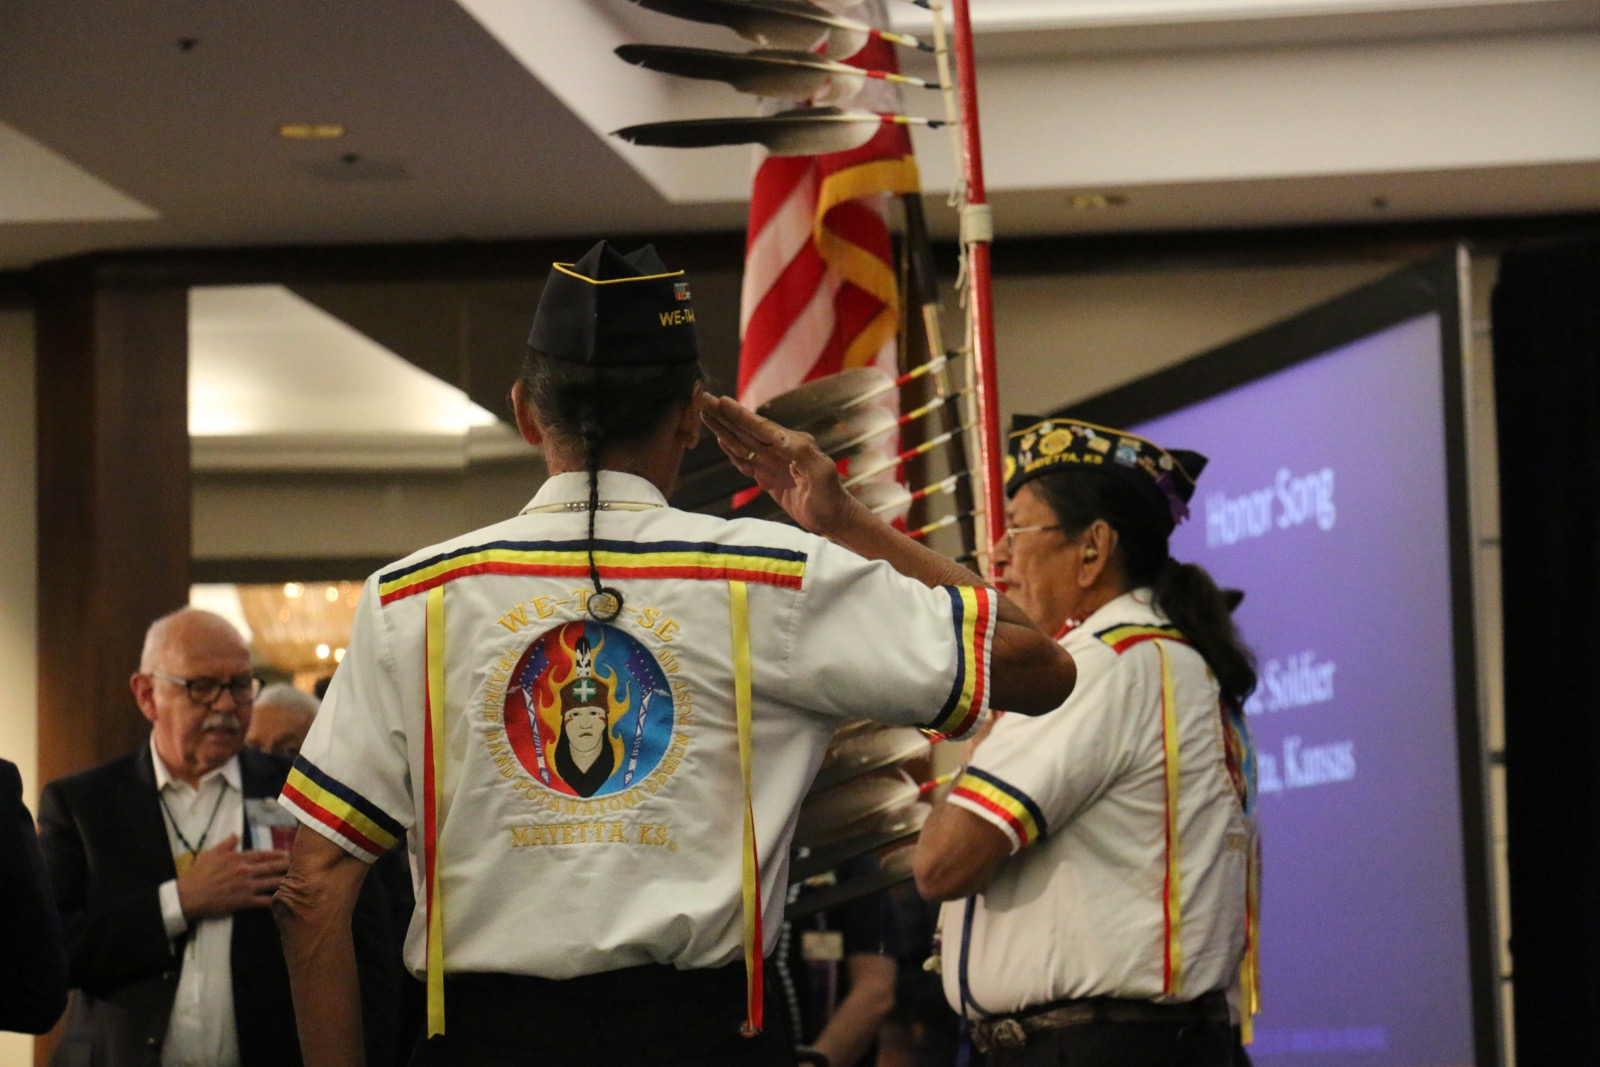 NCAI: Mashpee Wampanoag Tribe 'stripped' of its sovereignty